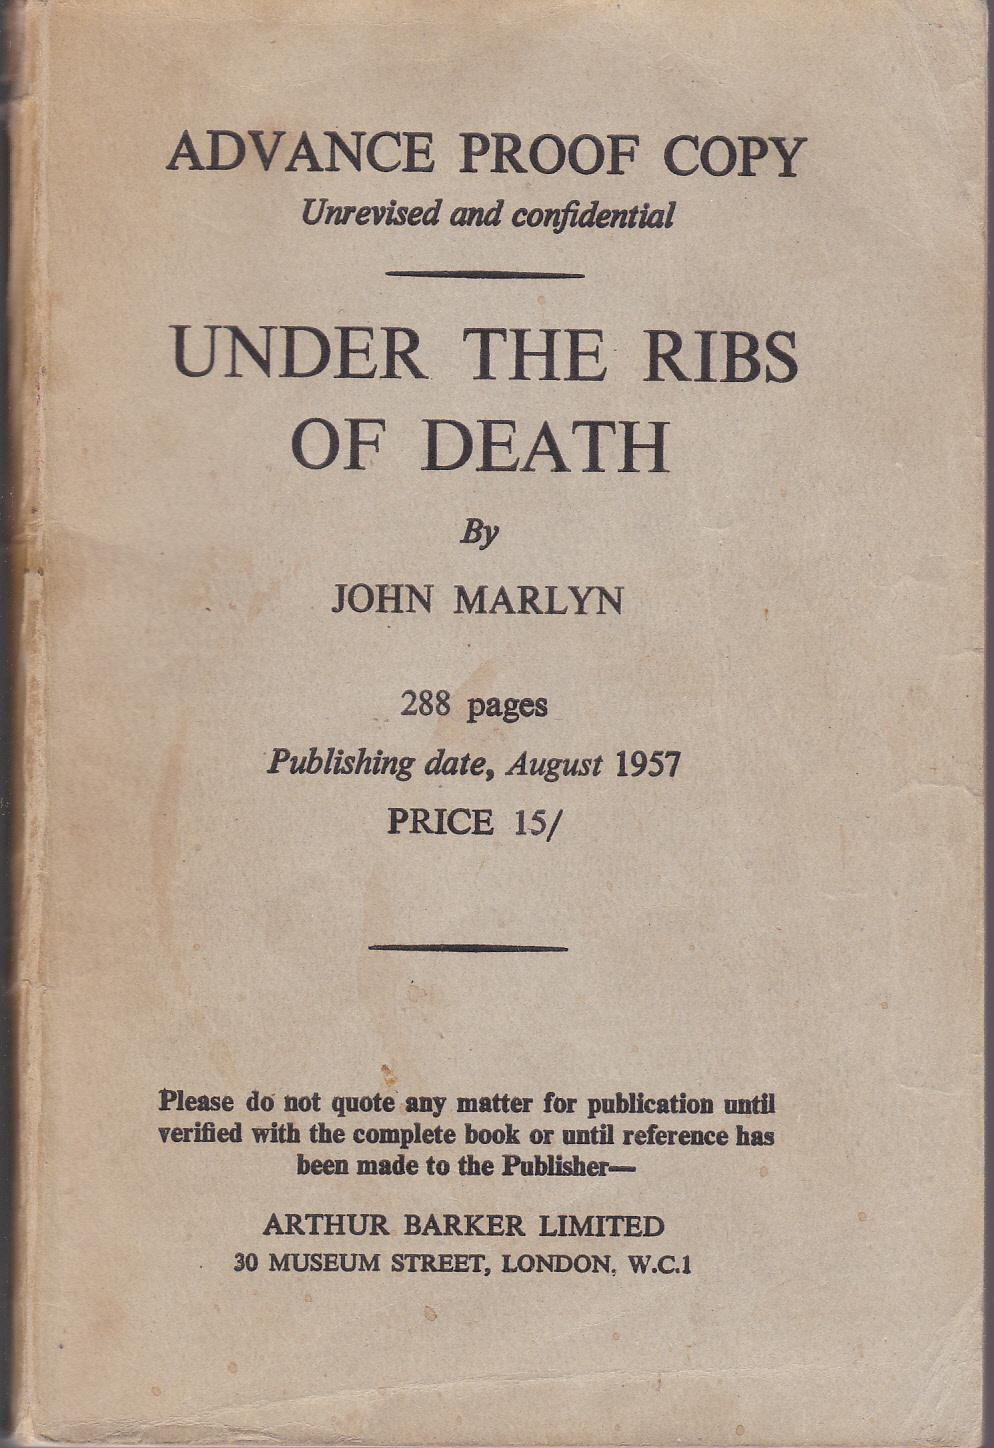 Under the Ribs of Death [proof copy] Marlyn, John Very Good Softcover